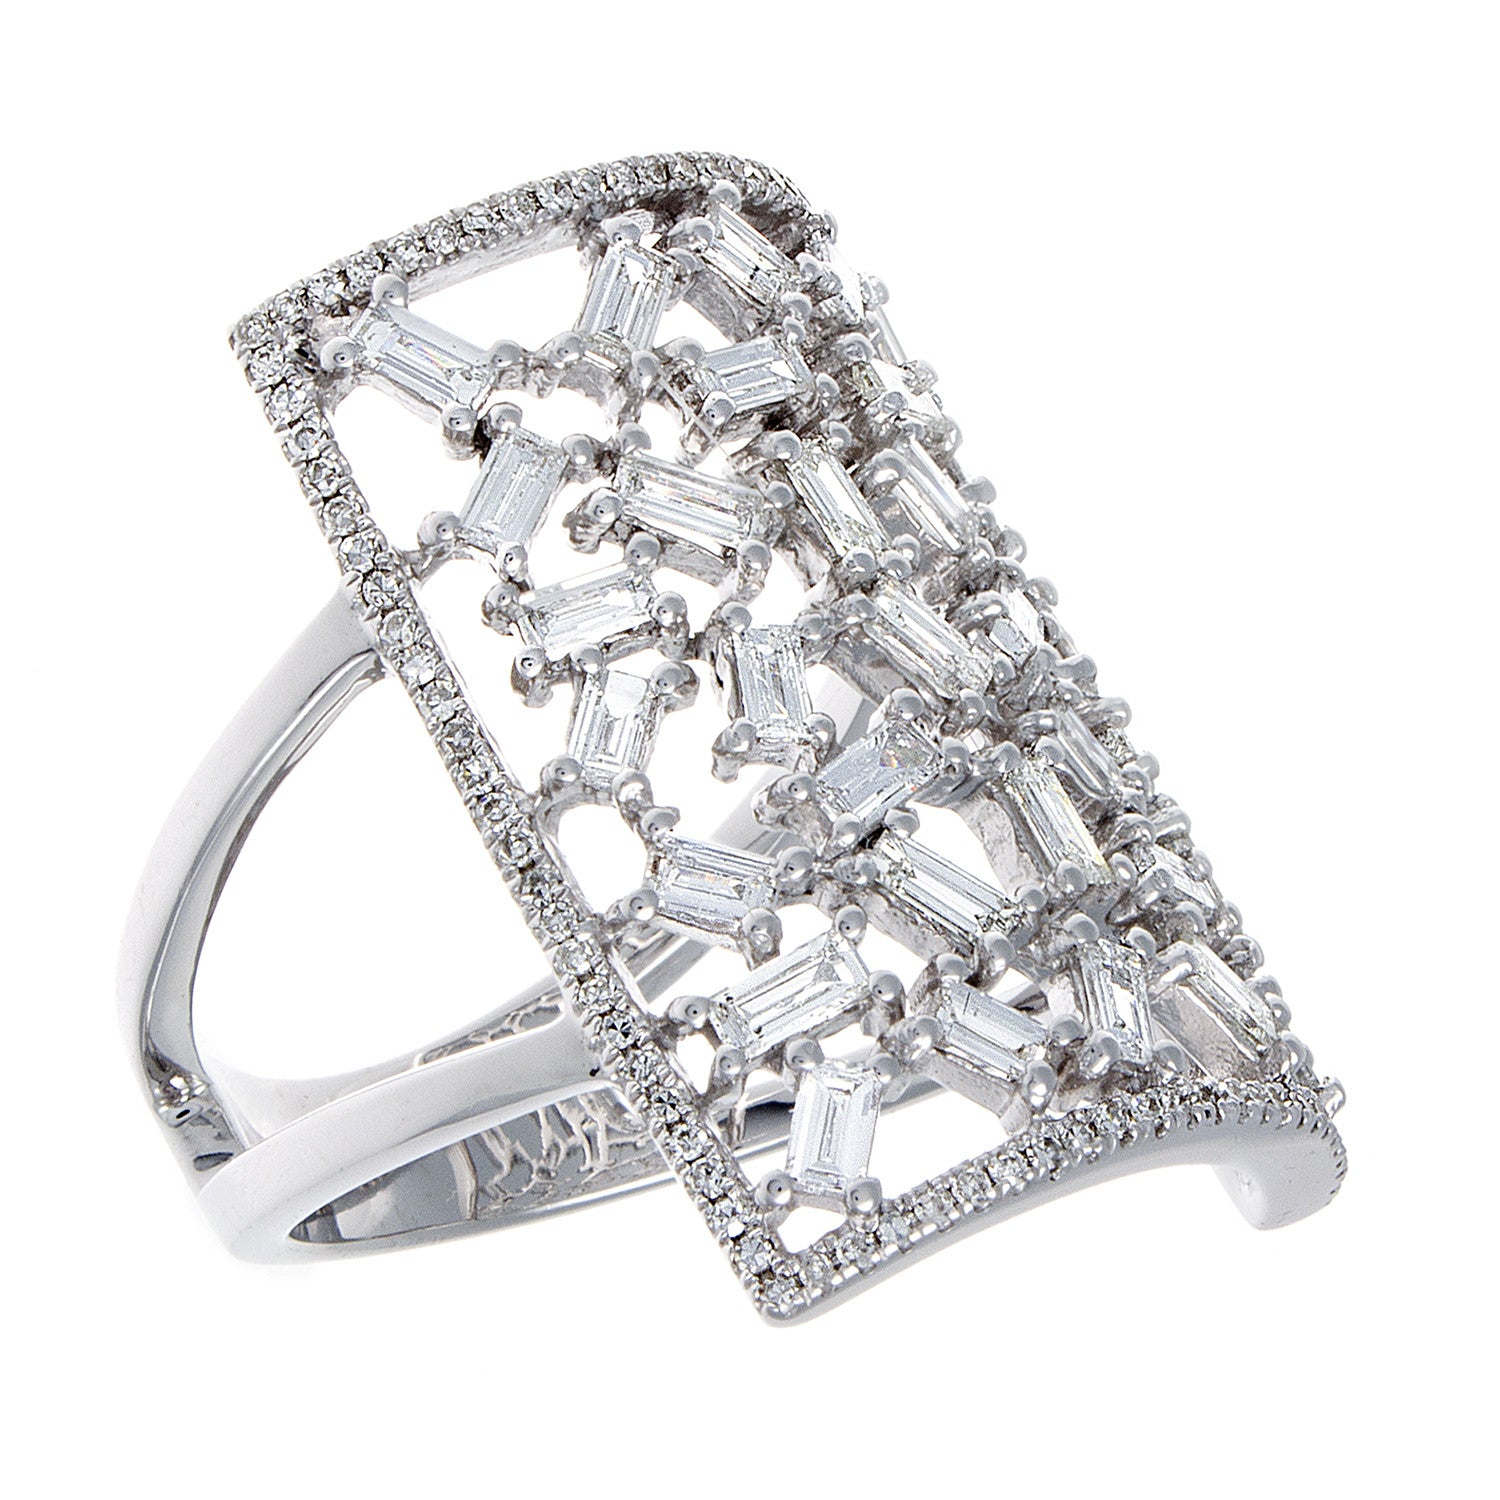 Diamond Encrusted Cuff Ring